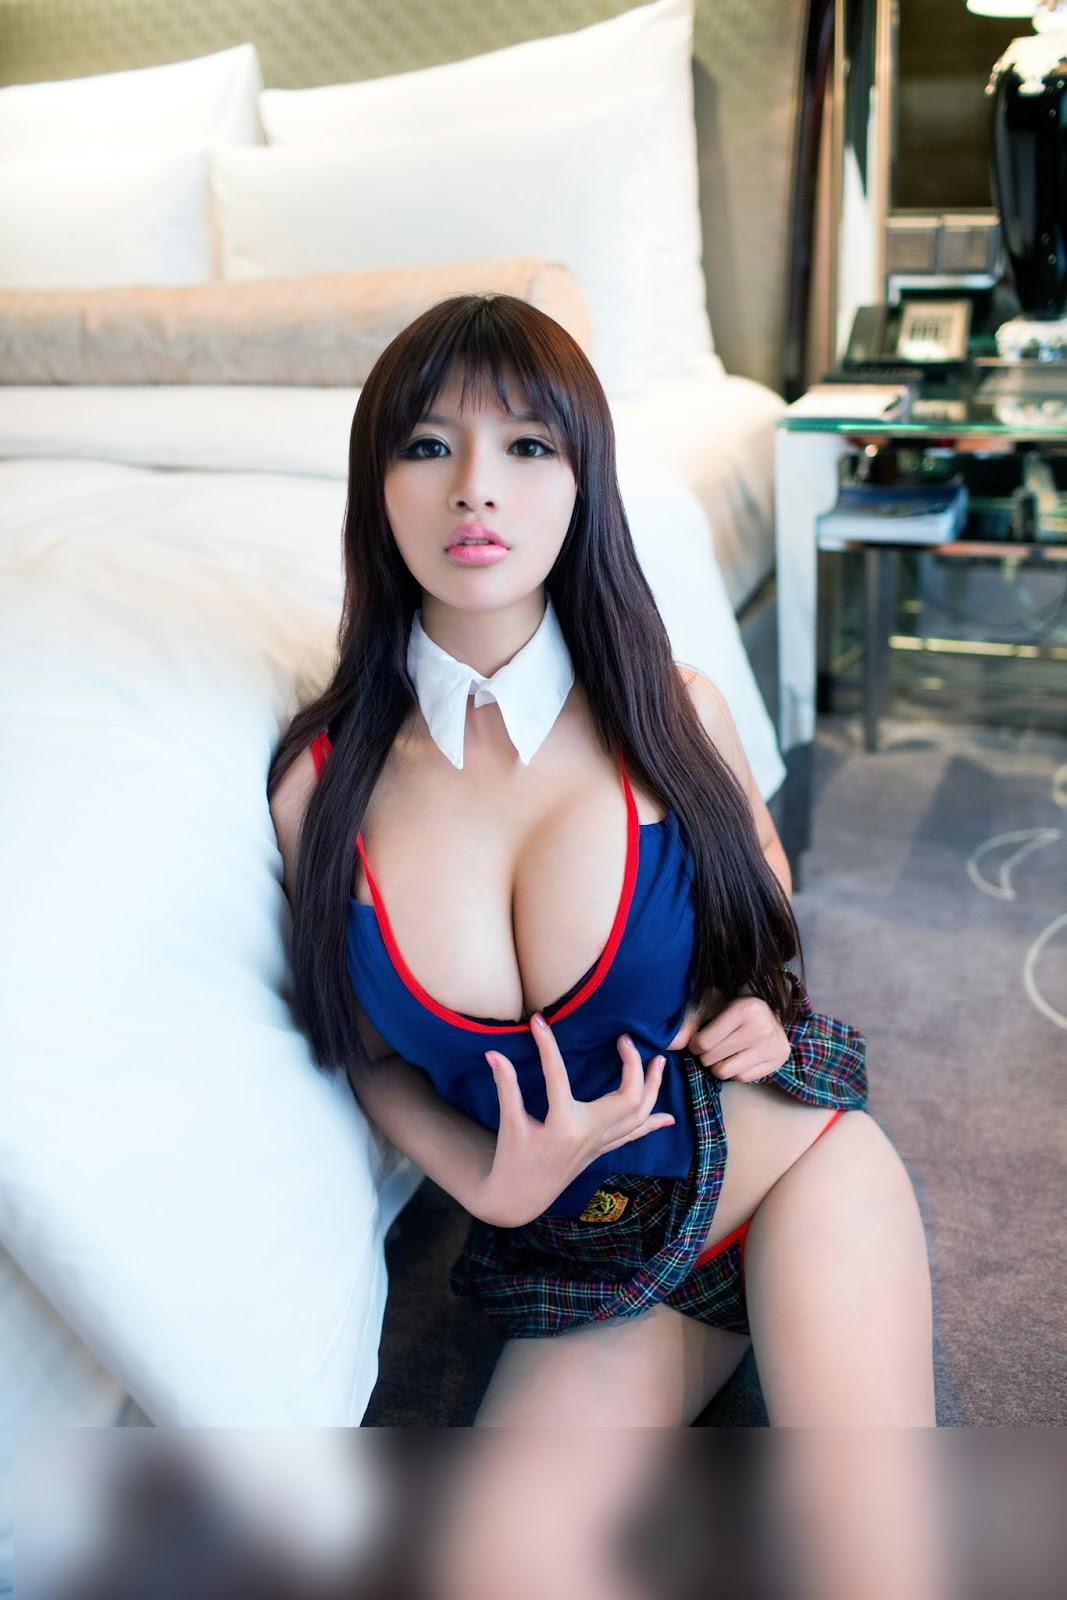 05 - Hot Girl Big TIts TUIGIRL NO.38 Asian Naked